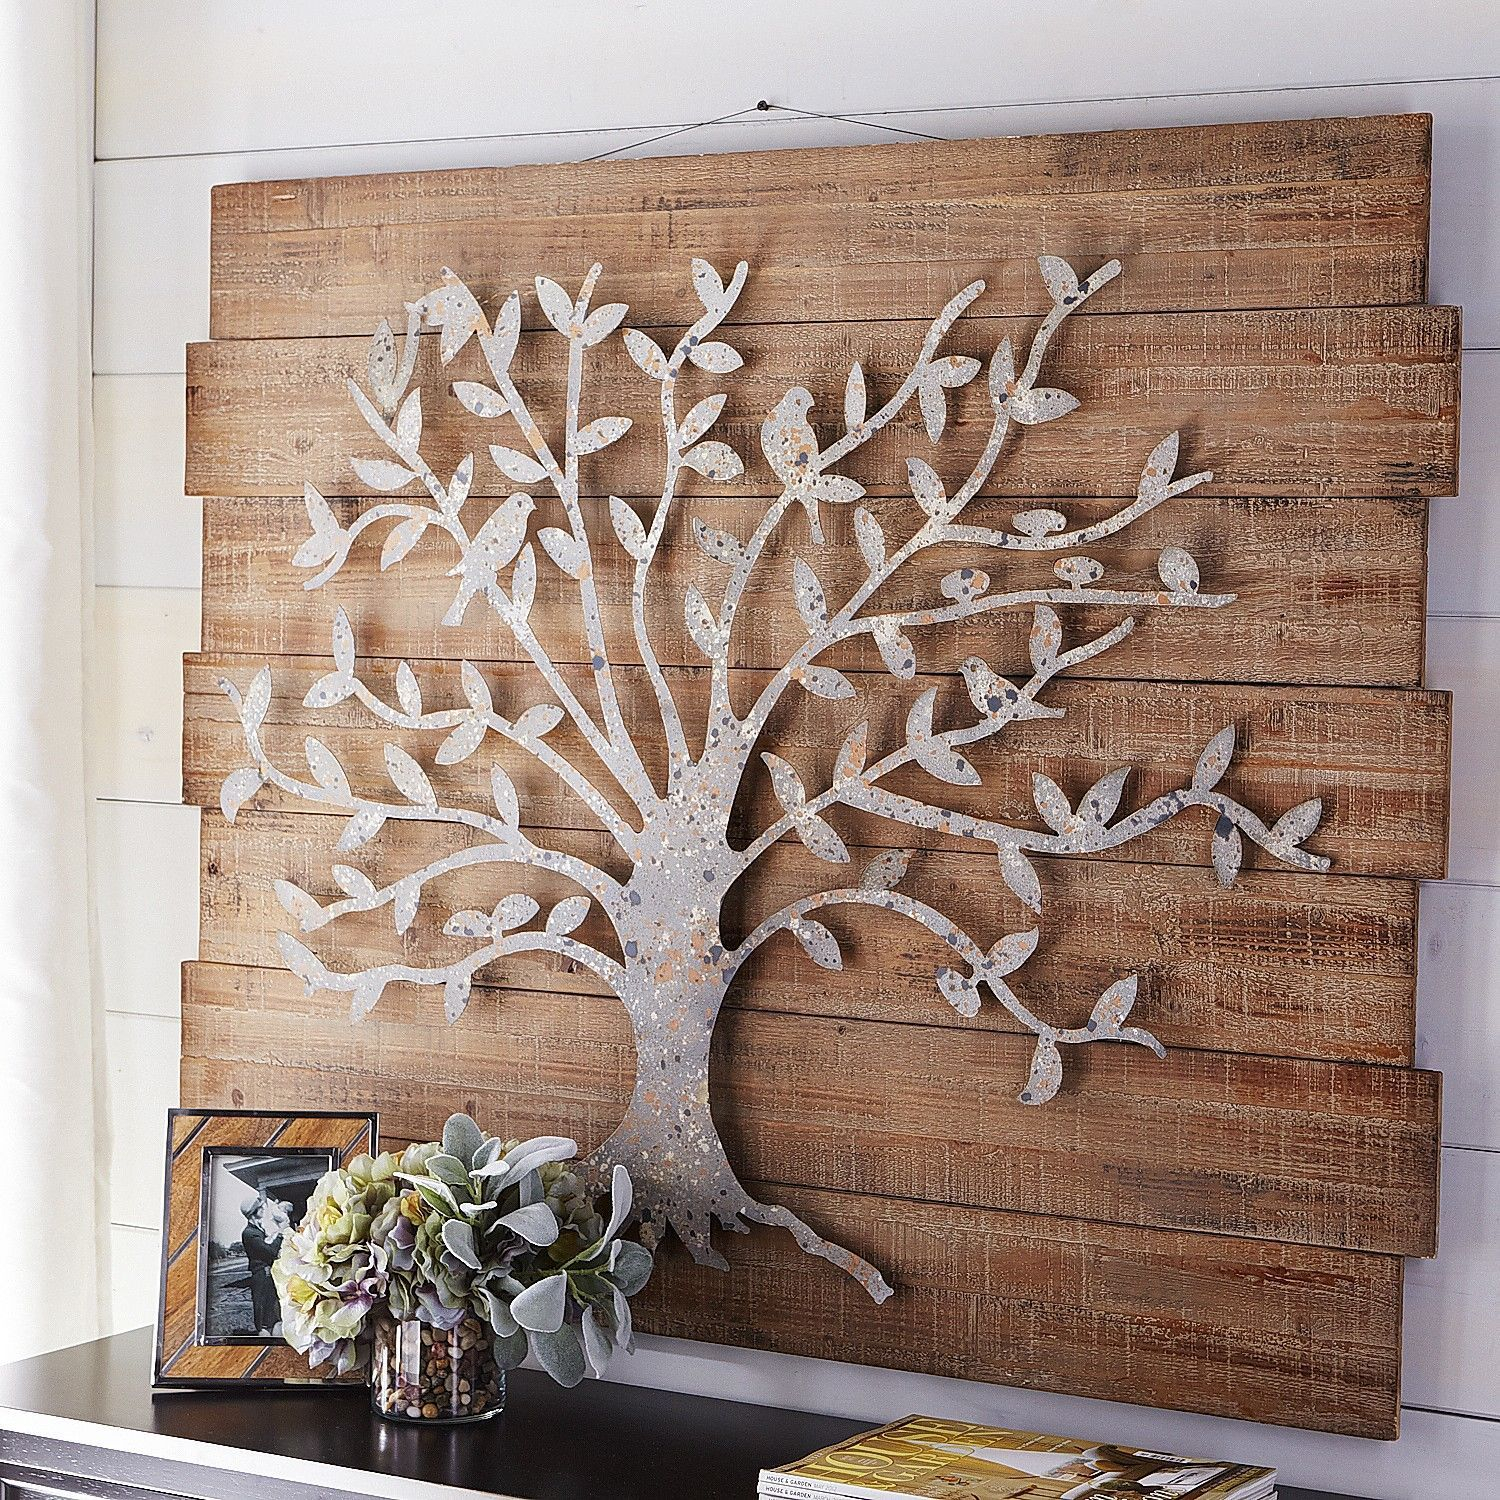 Timeless Tree Wall Decor | Pier 1 Imports … | Metal Work In In Ornamental Wood And Metal Scroll Wall Decor (View 25 of 30)